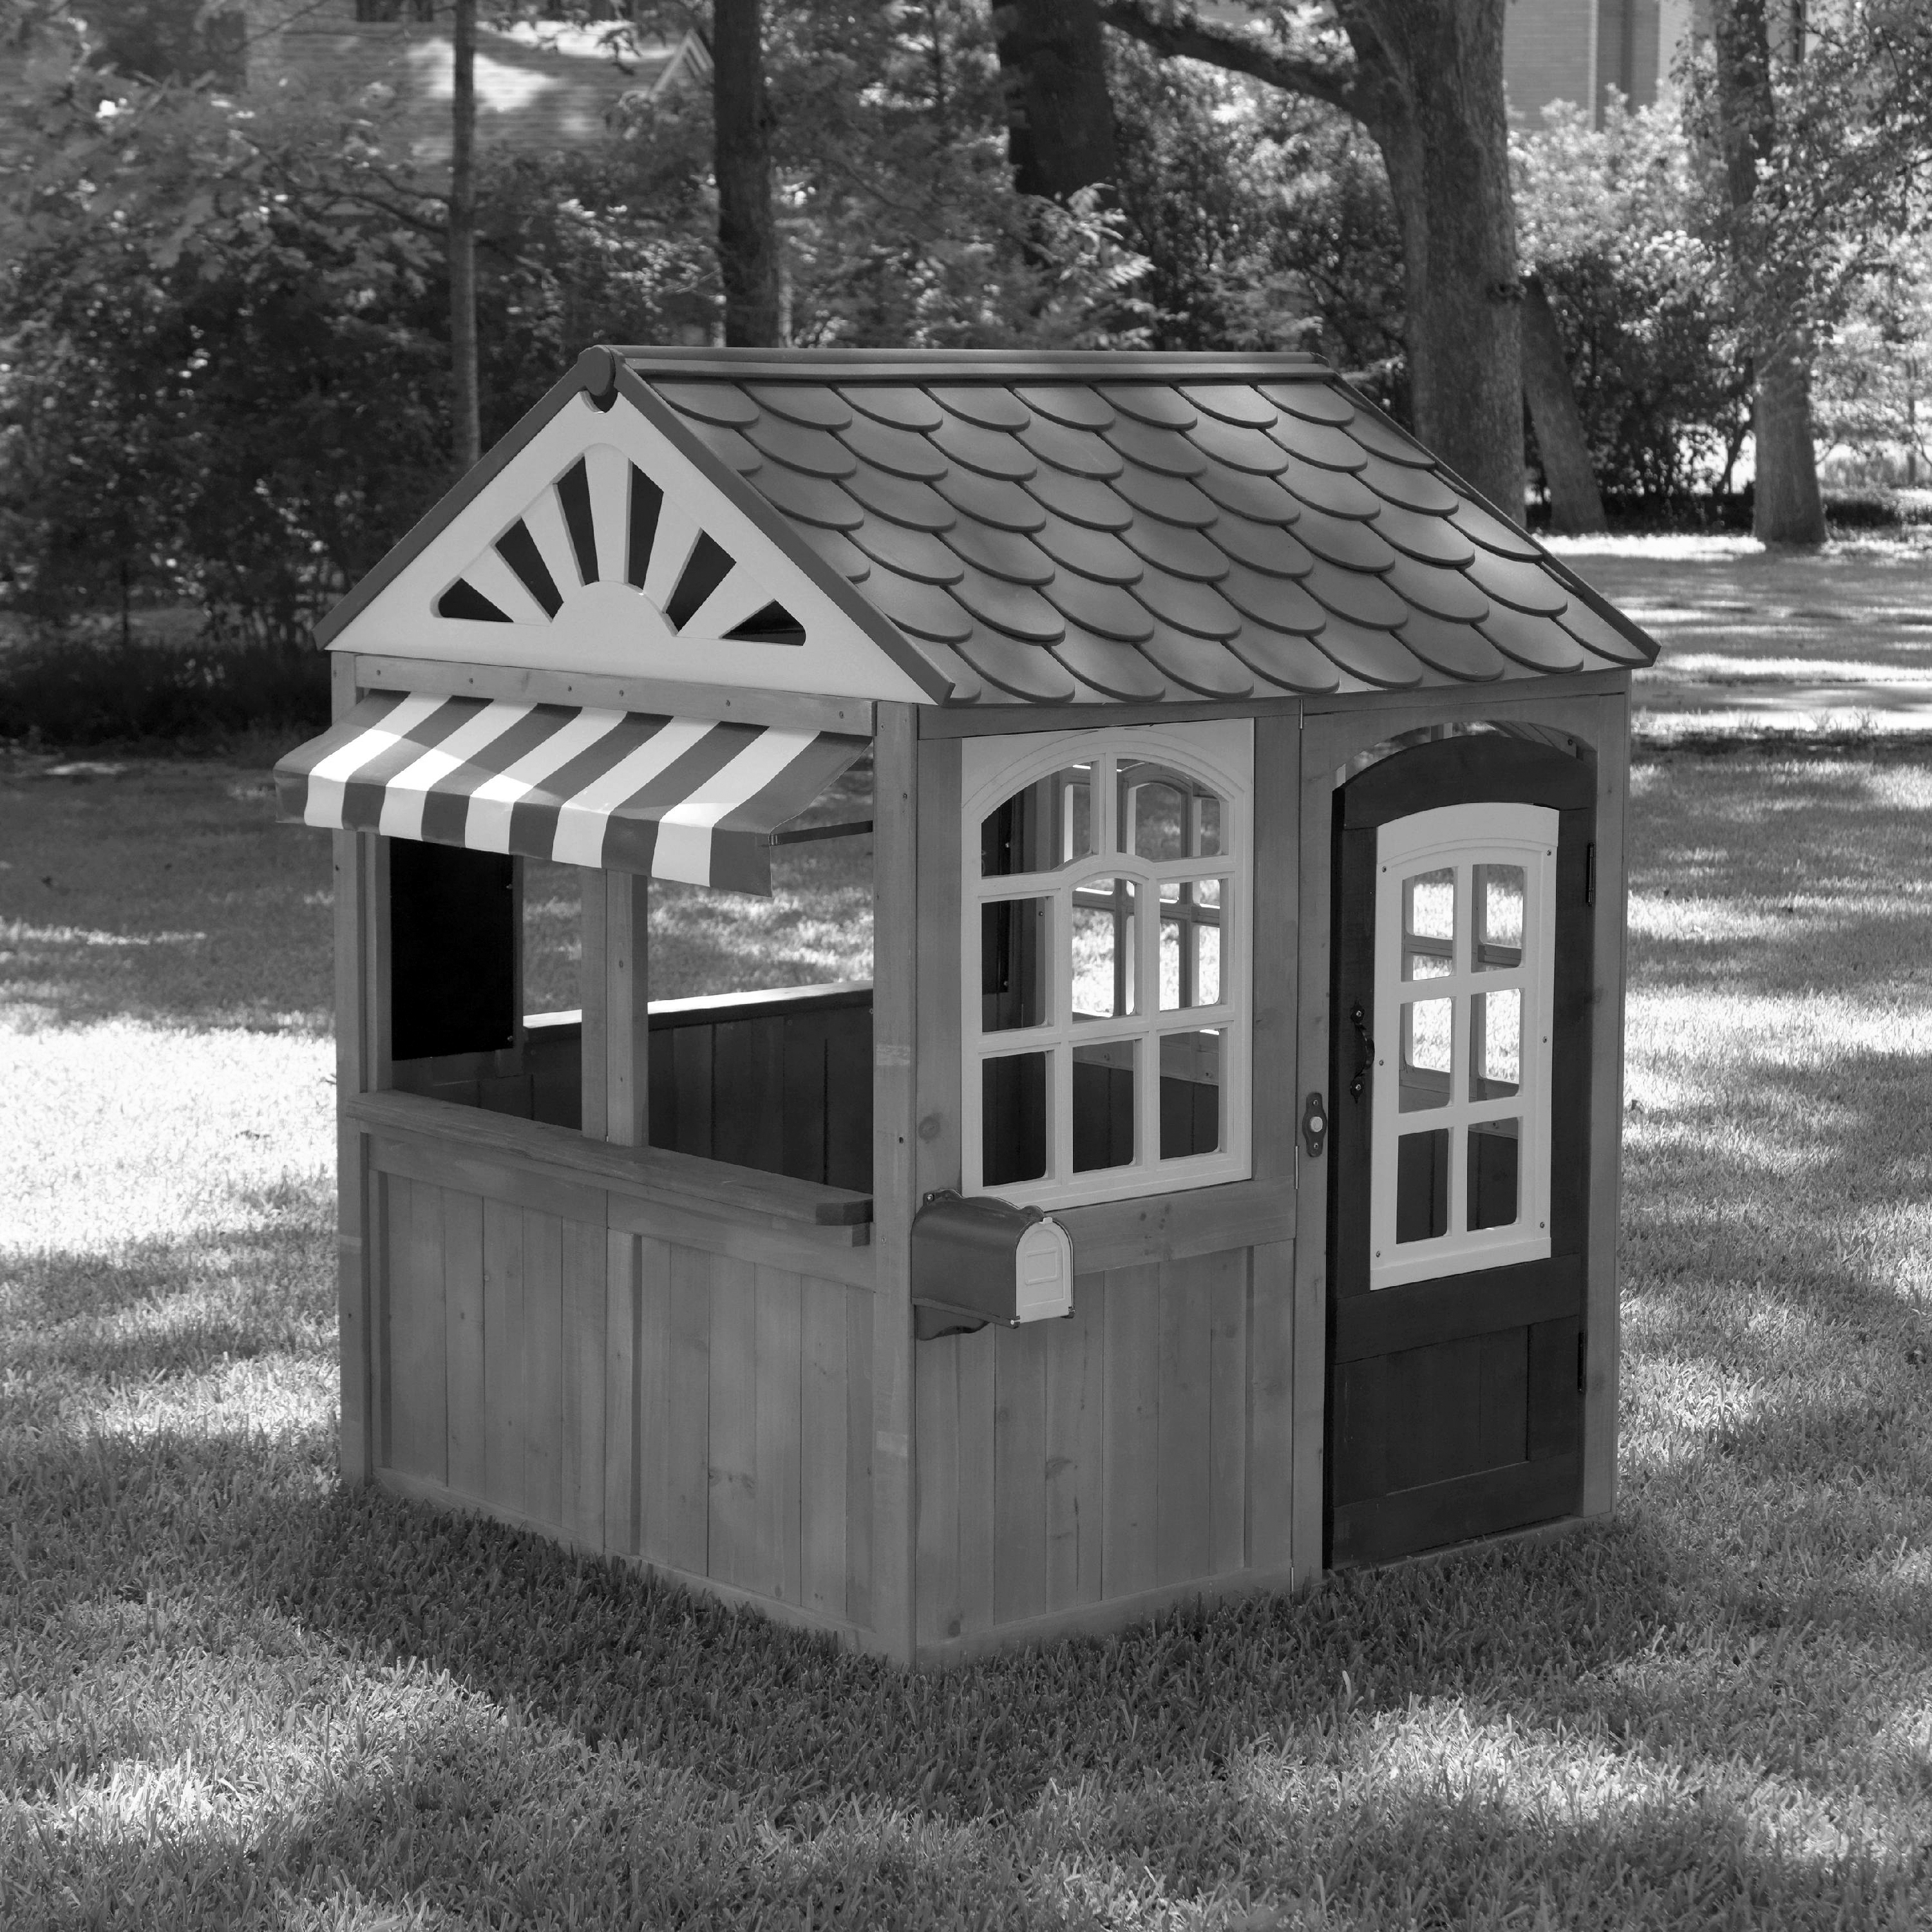 KidKraft Garden View playhouse that will be raffled off on September 7, to benefit CASA of Chautauqua County.